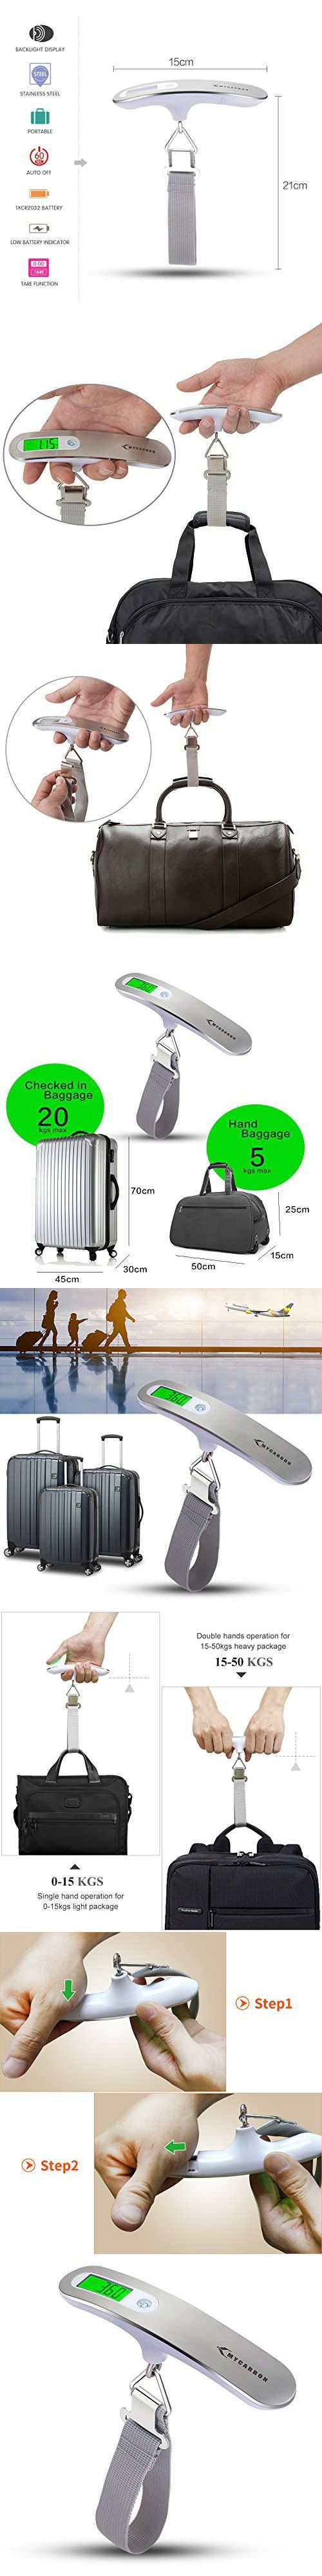 Luggage Scale MY CARBON Digital Scale and Hanging Scale 110 lb/ 50KG Digital Gram Scale Luggage Weight Scale with Backlit Portable Scale Digital for Travel Luggage Home Use and Christmas Gifts